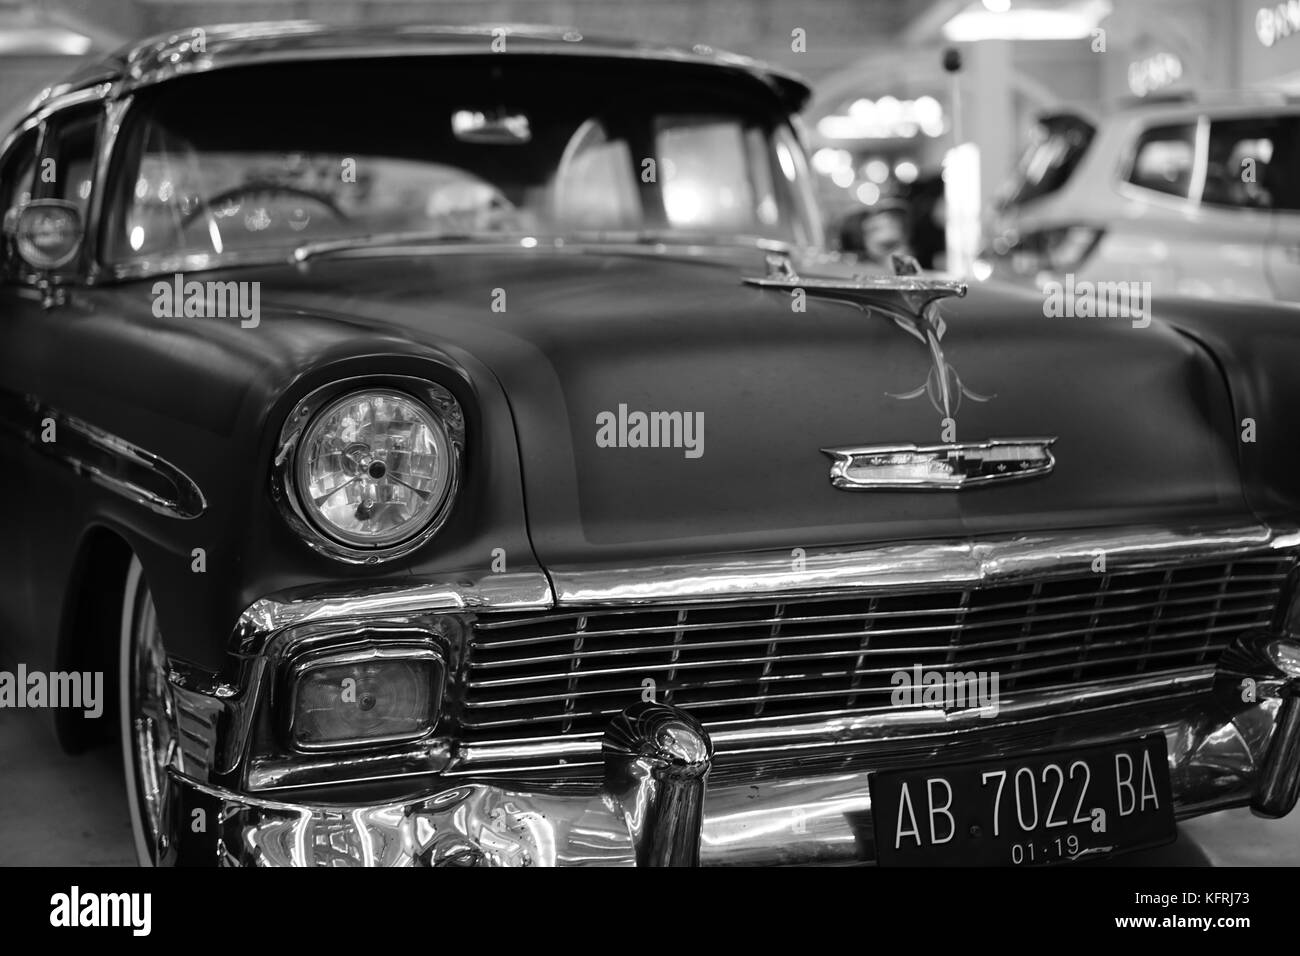 B/W OLDSCHOOL CAR - Stock Image